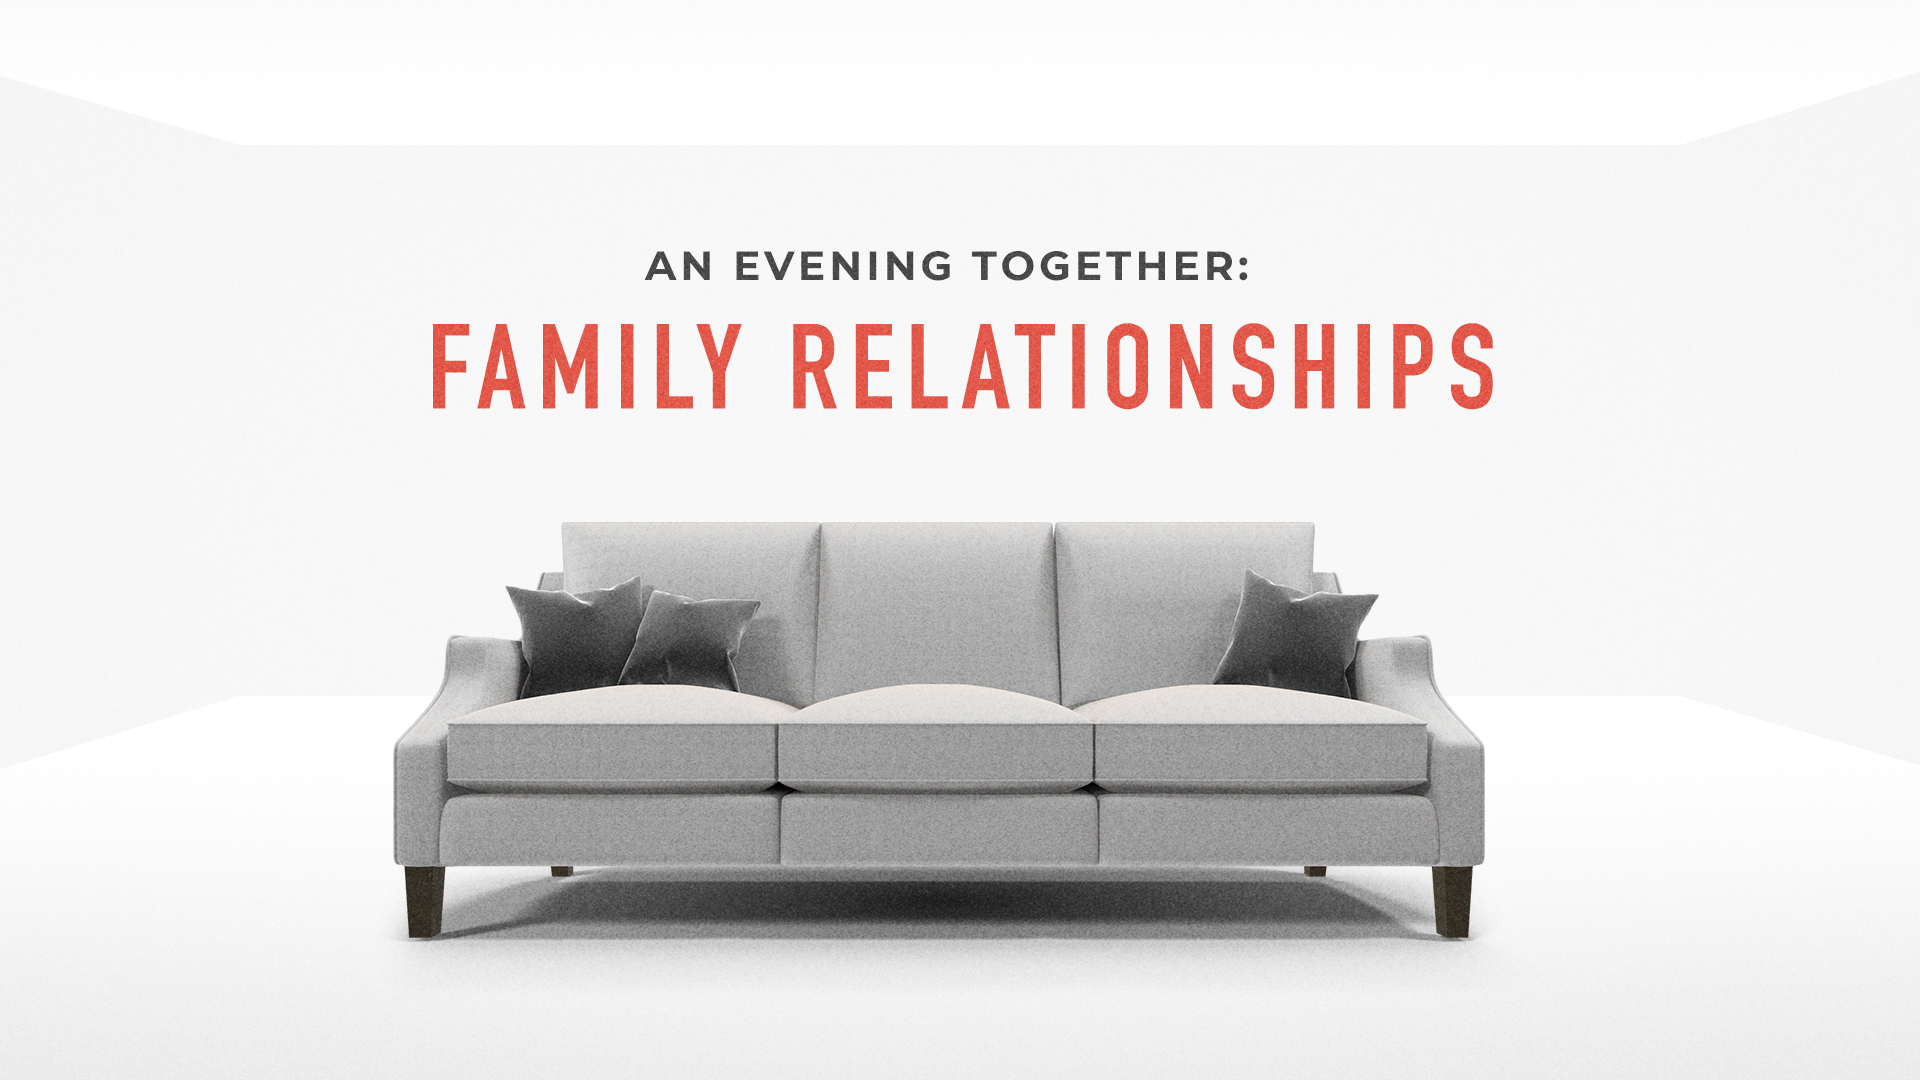 Relationships in the family copy image